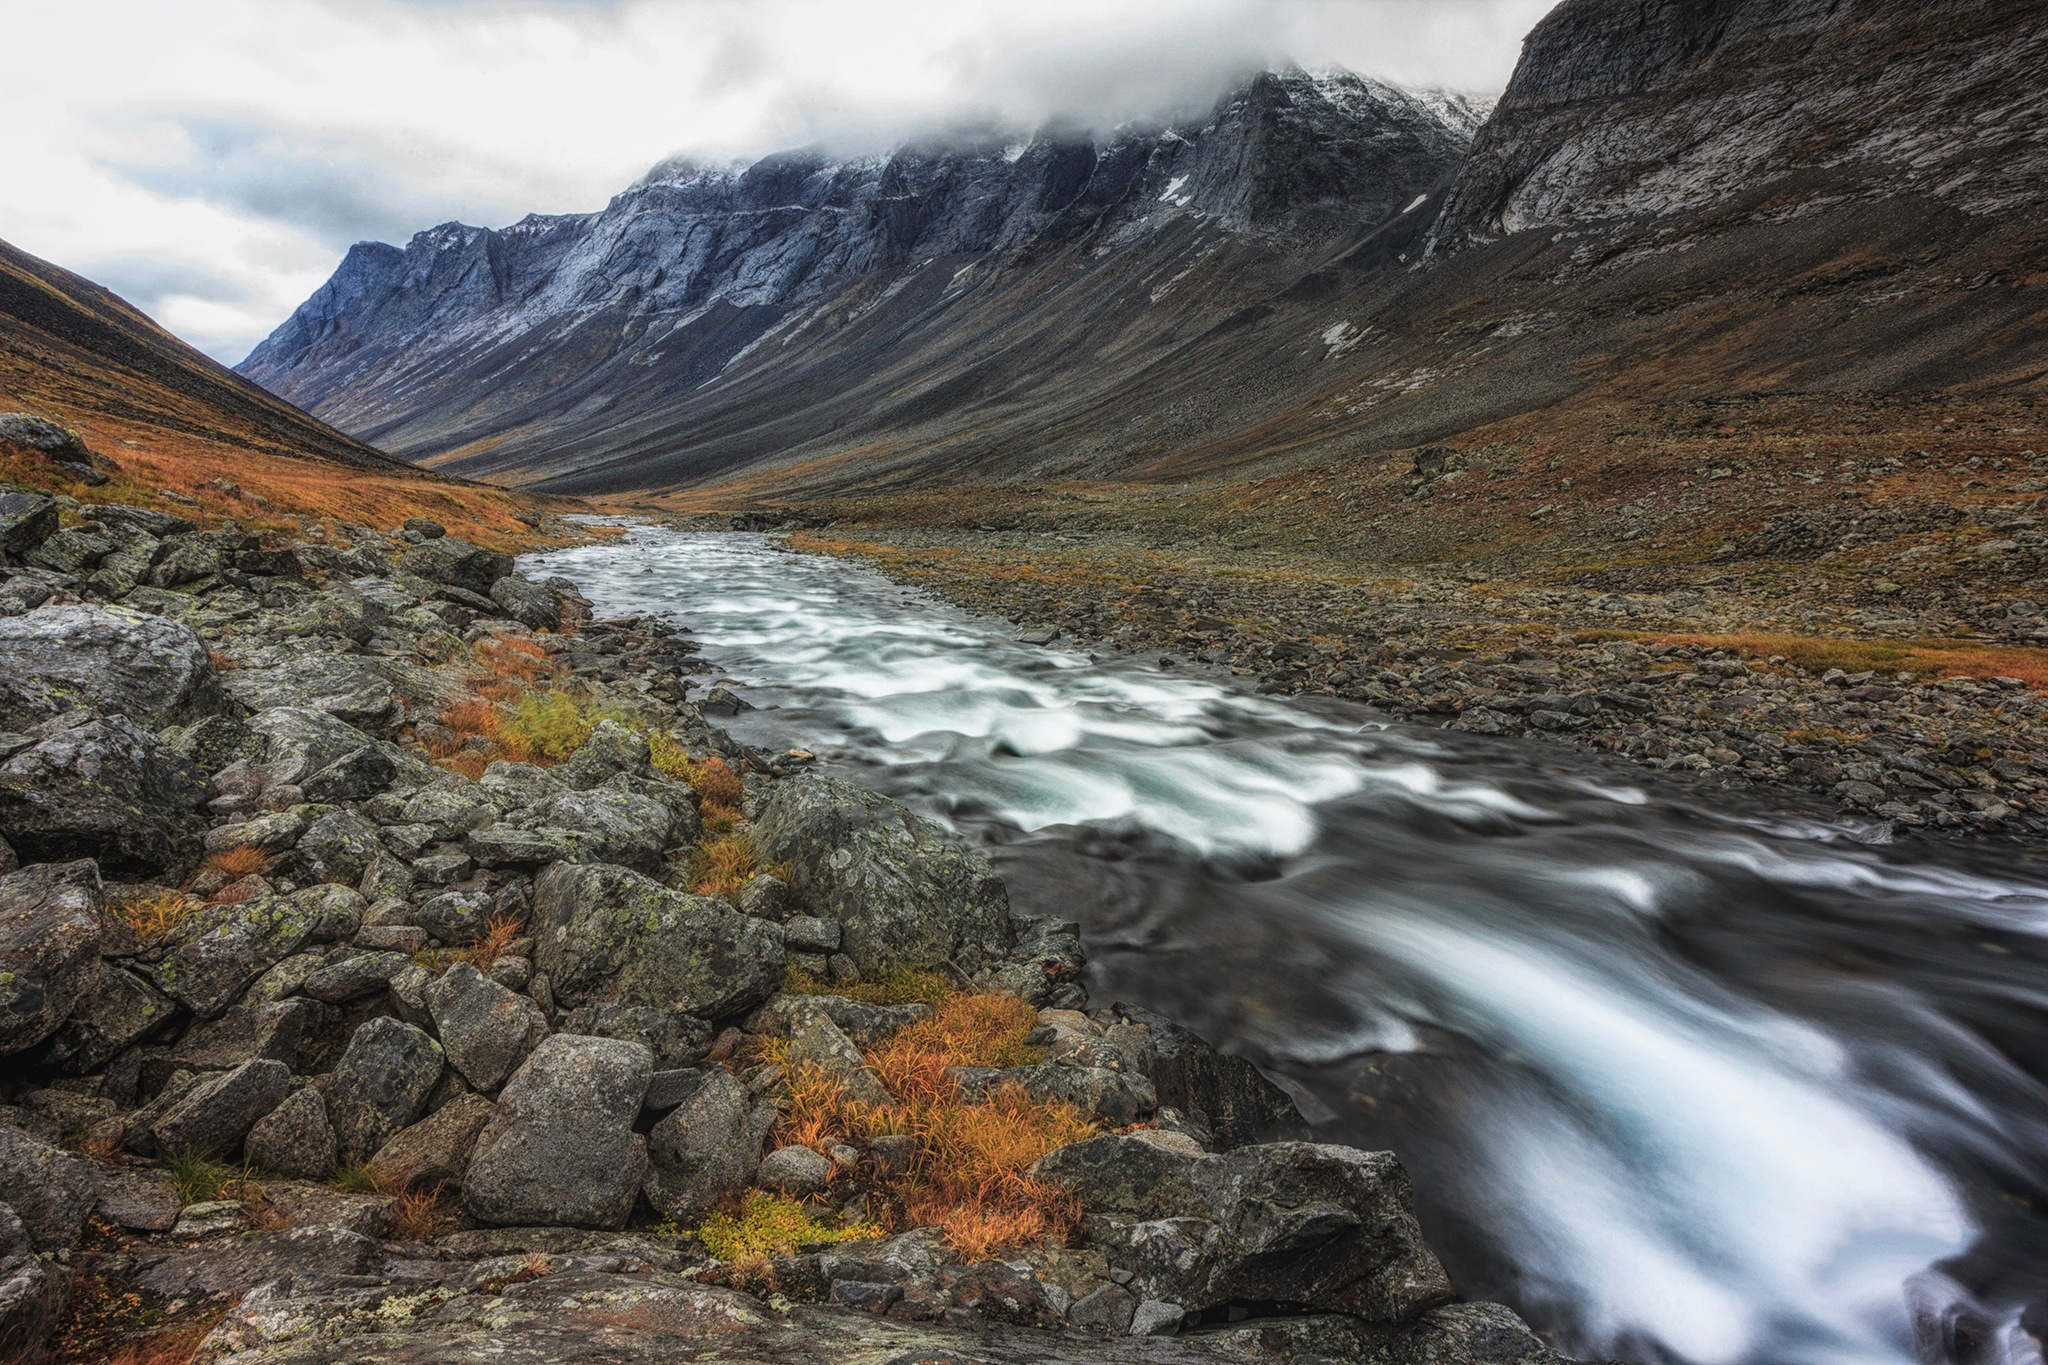 Mountain flow by Henrik Wanders